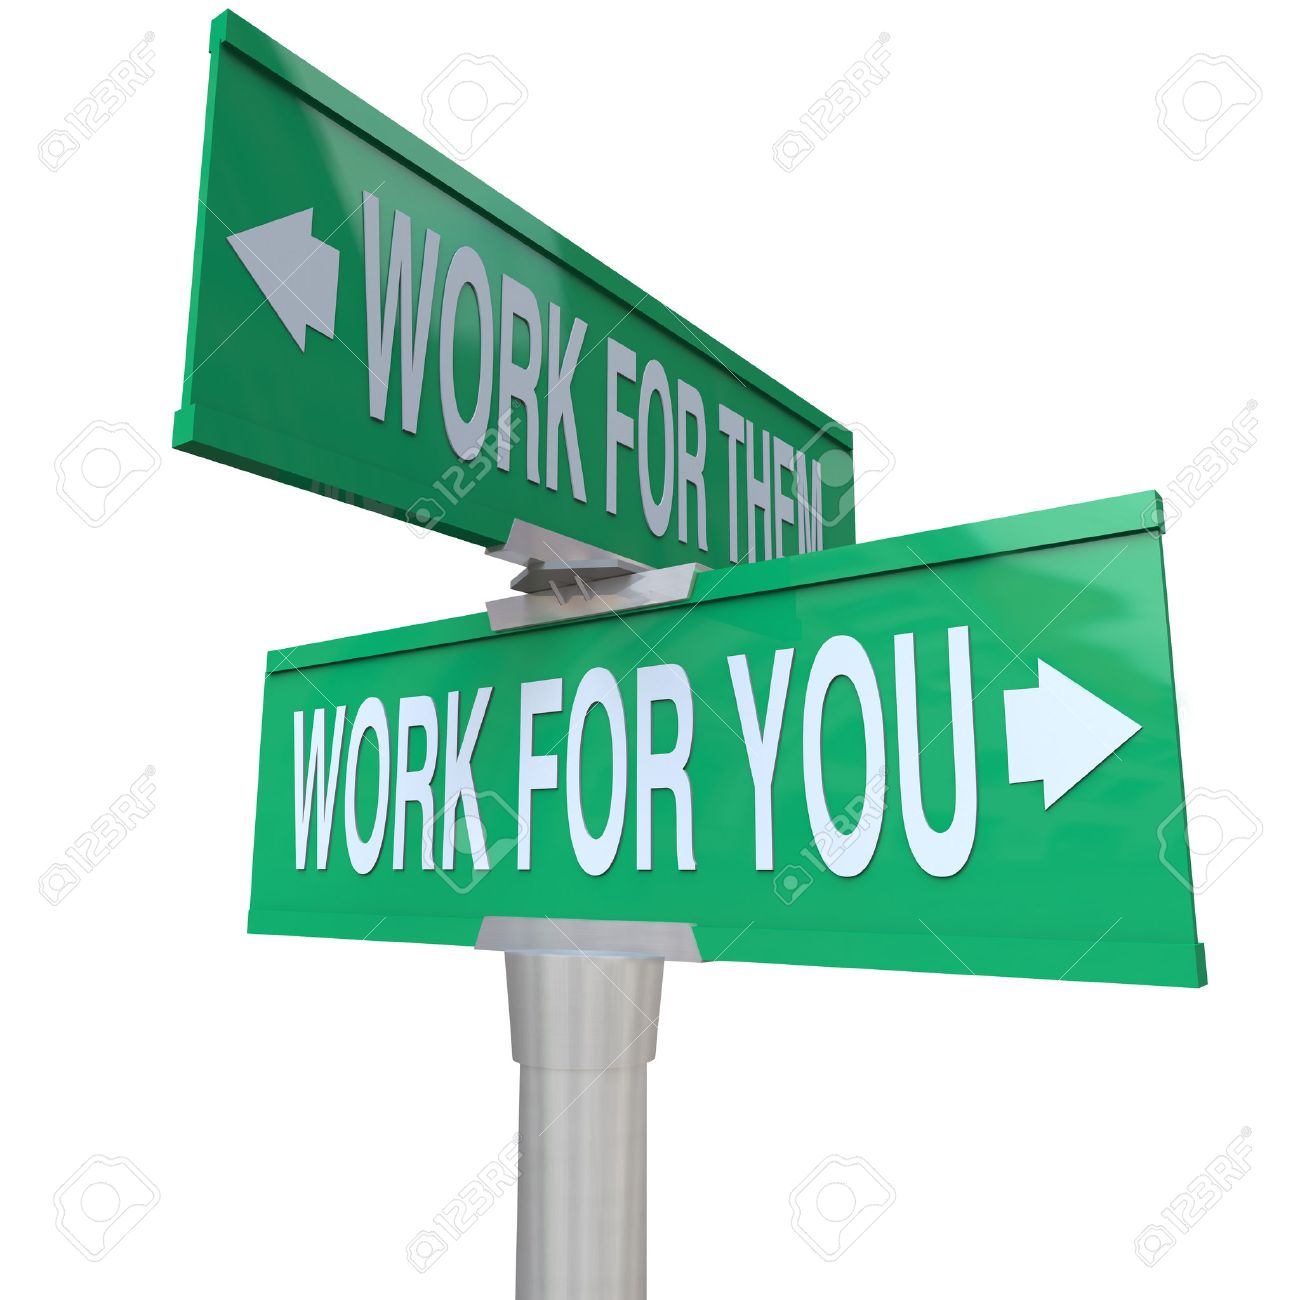 working independently images stock pictures royalty working working independently work for you words on a green road sign vs working for them